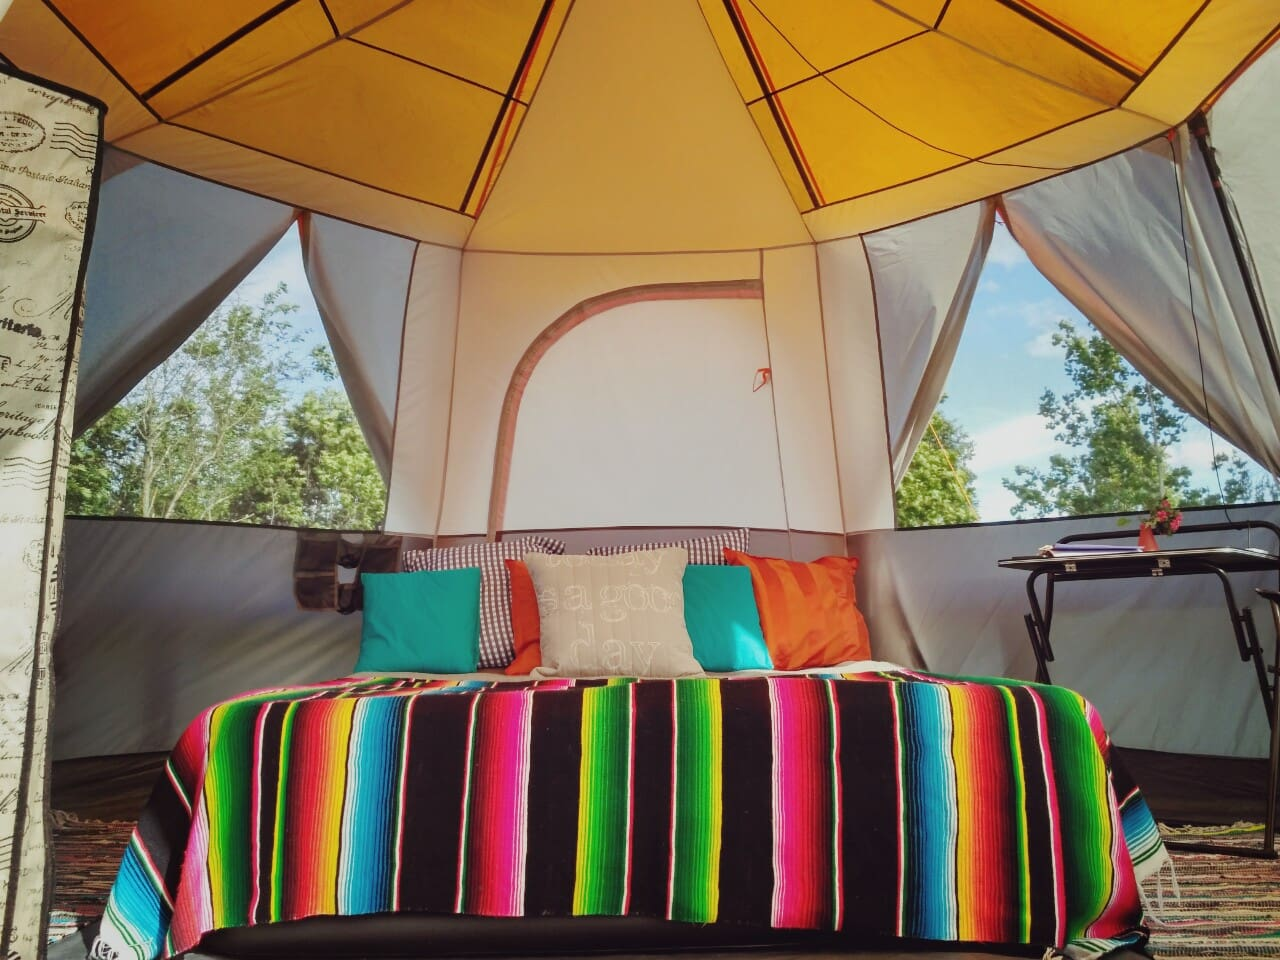 Sown-in groundsheet ensures a completely bug-free glamping experience.